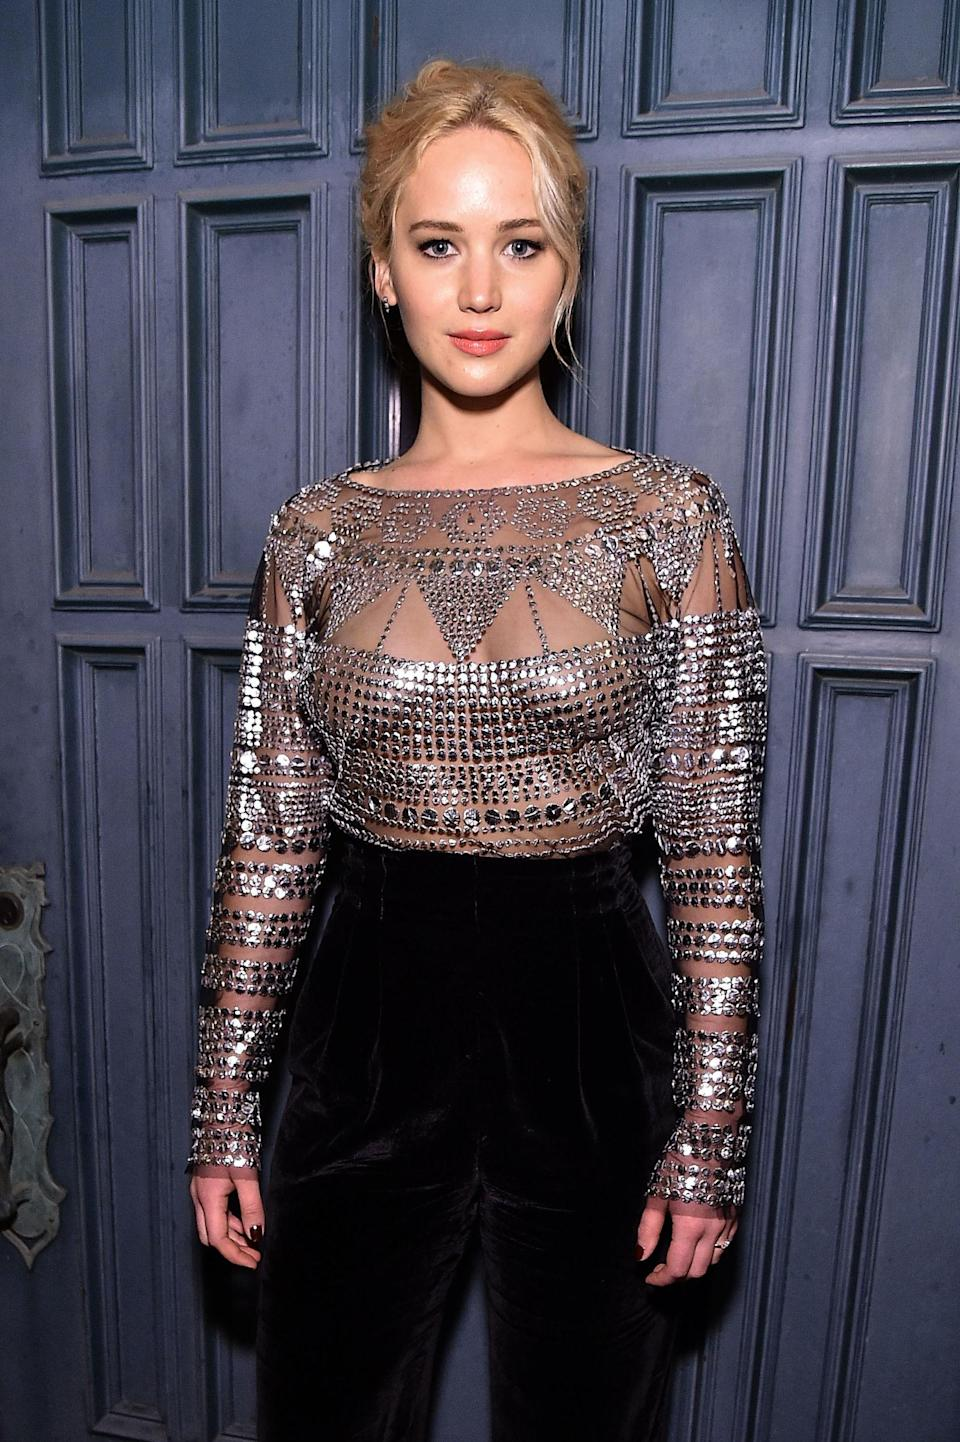 """<p>Jennifer Lawrence <a href=""""https://www.youtube.com/watch?v=VXx126QIVJg"""" rel=""""nofollow noopener"""" target=""""_blank"""" data-ylk=""""slk:loves pizza"""" class=""""link rapid-noclick-resp"""">loves pizza</a> as much as we love Jennifer Lawrence. Her <a href=""""http://www.etonline.com/news/188382_jennifer_lawrence_favorite_headline_about_herself_involves_pizza/"""" rel=""""nofollow noopener"""" target=""""_blank"""" data-ylk=""""slk:favorite headline"""" class=""""link rapid-noclick-resp"""">favorite headline</a> ever written about herself is 'Look How Much Pizza Jennifer Lawrence Ordered,'"""" and this is a woman who has been nominated for four Oscars. And yes, her greatest culinary invention <span>involves pizza. </span><span>Lawrence explained the """"Chili Pizza Sandwich"""" to <a href=""""https://thescene.com/watch/glamour/glamour-cover-stars-jennifer-lawrence-tells-it-like-it-is"""" rel=""""nofollow noopener"""" target=""""_blank"""" data-ylk=""""slk:Glamour"""" class=""""link rapid-noclick-resp""""><em>Glamour</em></a><span>: """"You have a piece of pizza, you put chili in it with noodles, like southern chili with noodles, and then another piece of pizza, and then you eat it like a sandwich."""" </span></span></p>"""